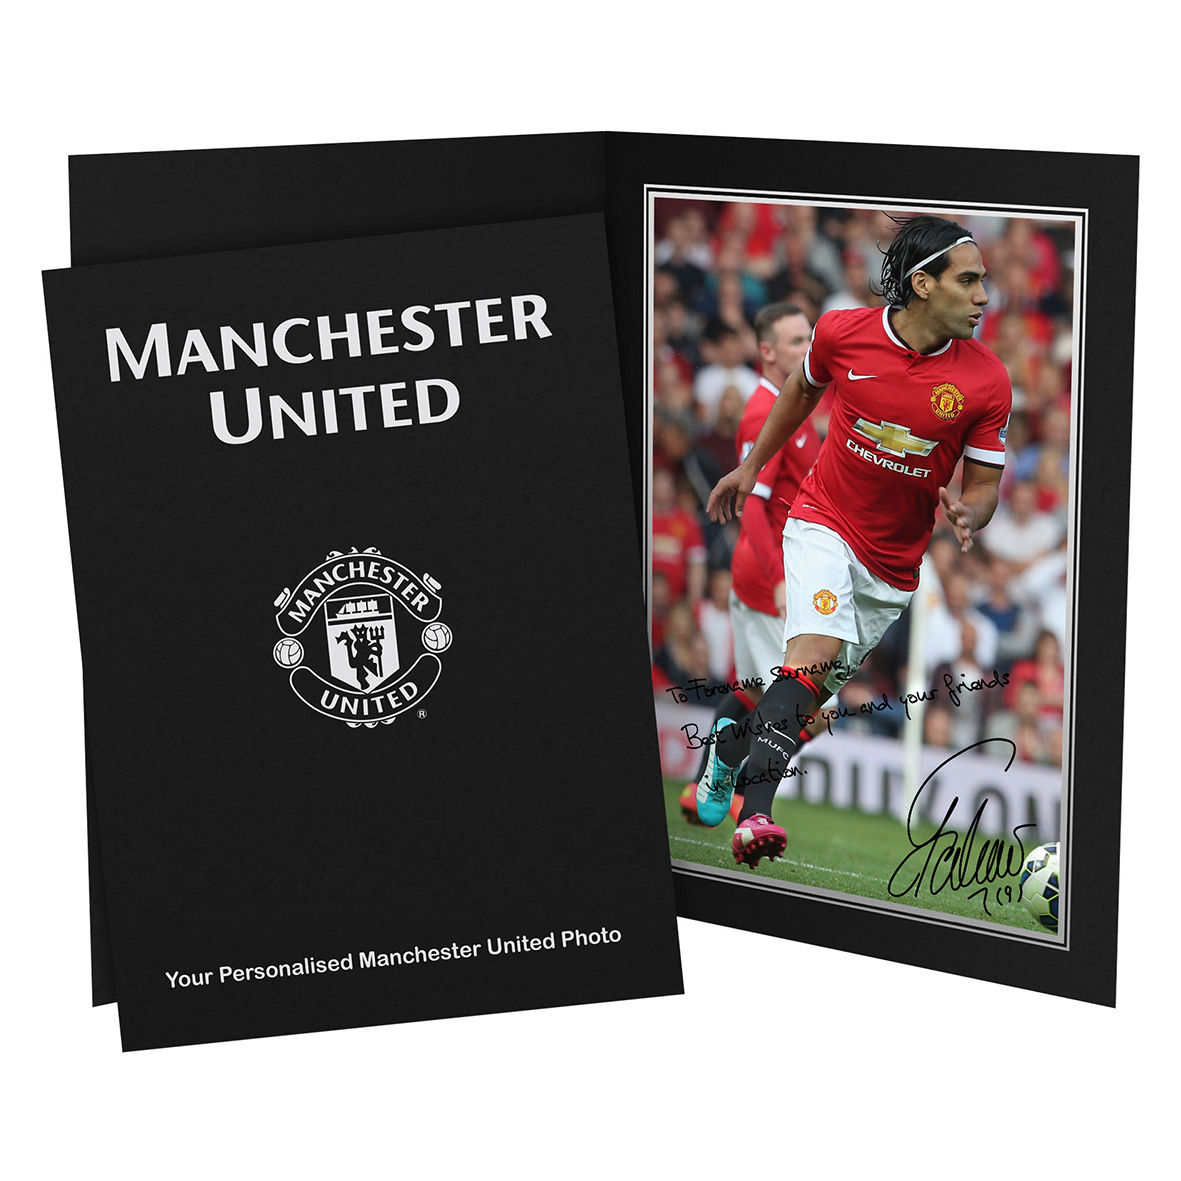 Manchester United Personalised Signature Photo in Presentation Folder - Falcao